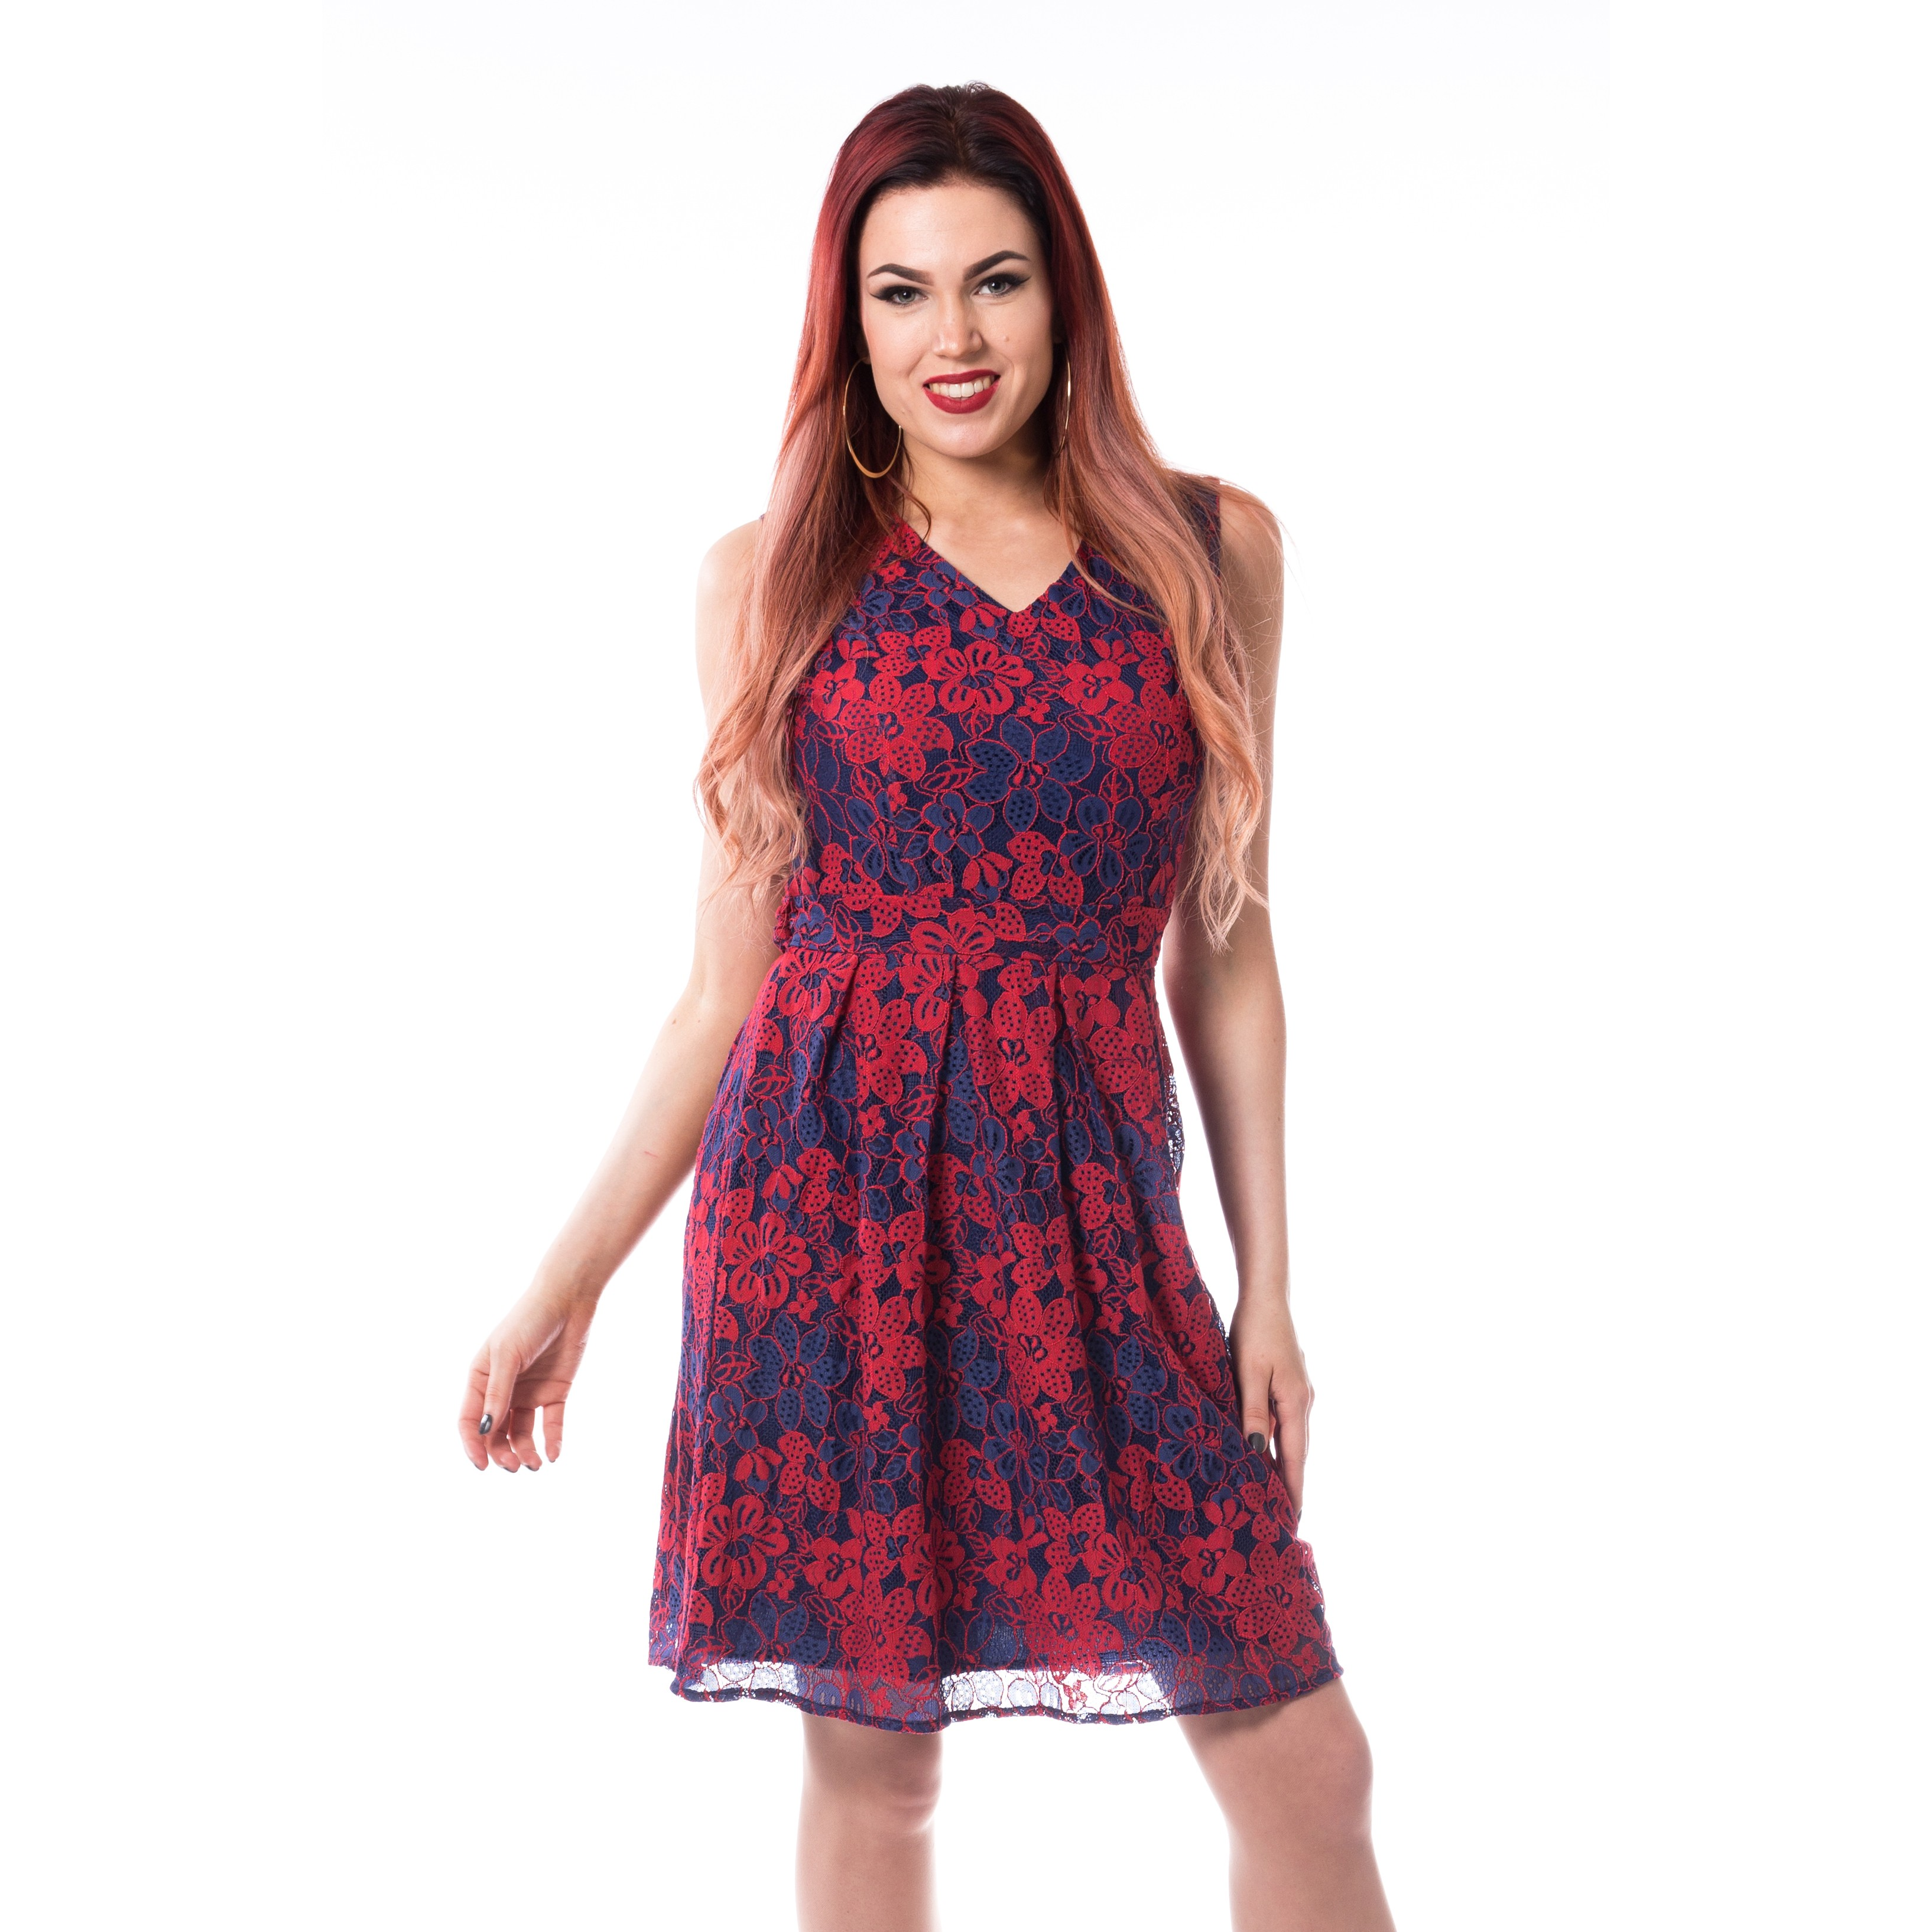 INNOCENT LIFESTY - Helmi Dress Ladies Red/Blue *NEW IN-a*